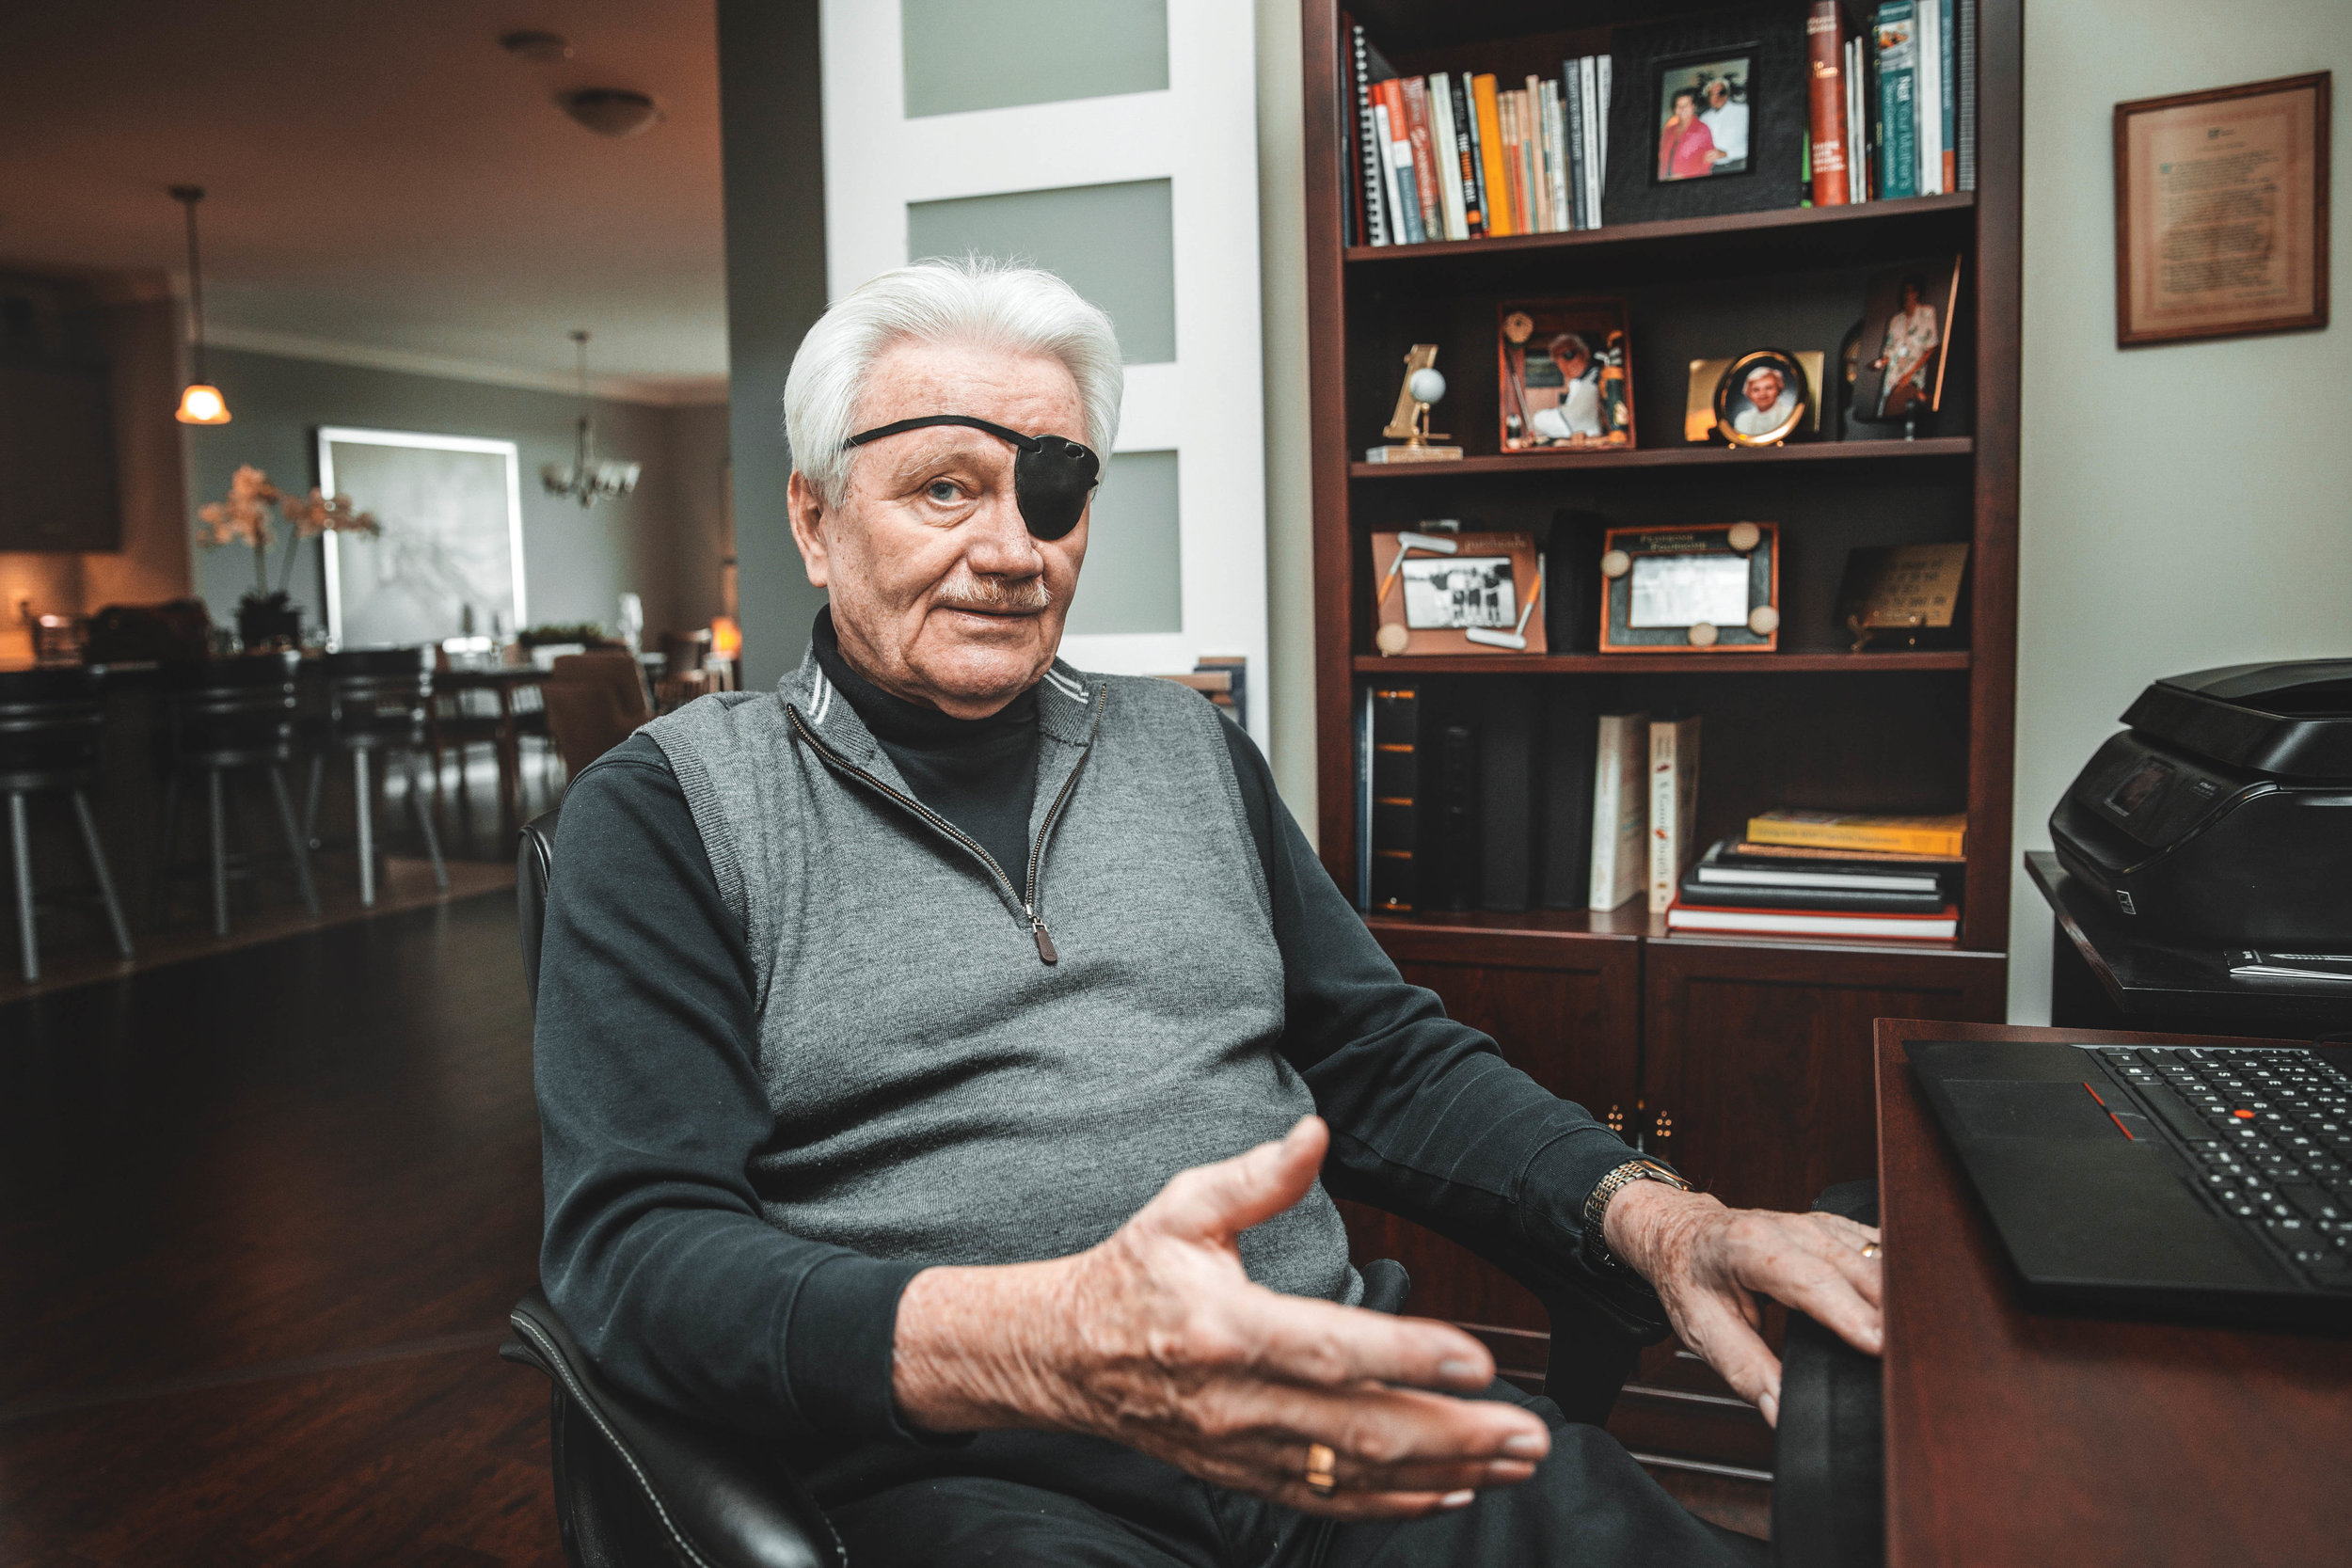 Ron Posno at home in London, Ont. Photo by Monique Wiendels.